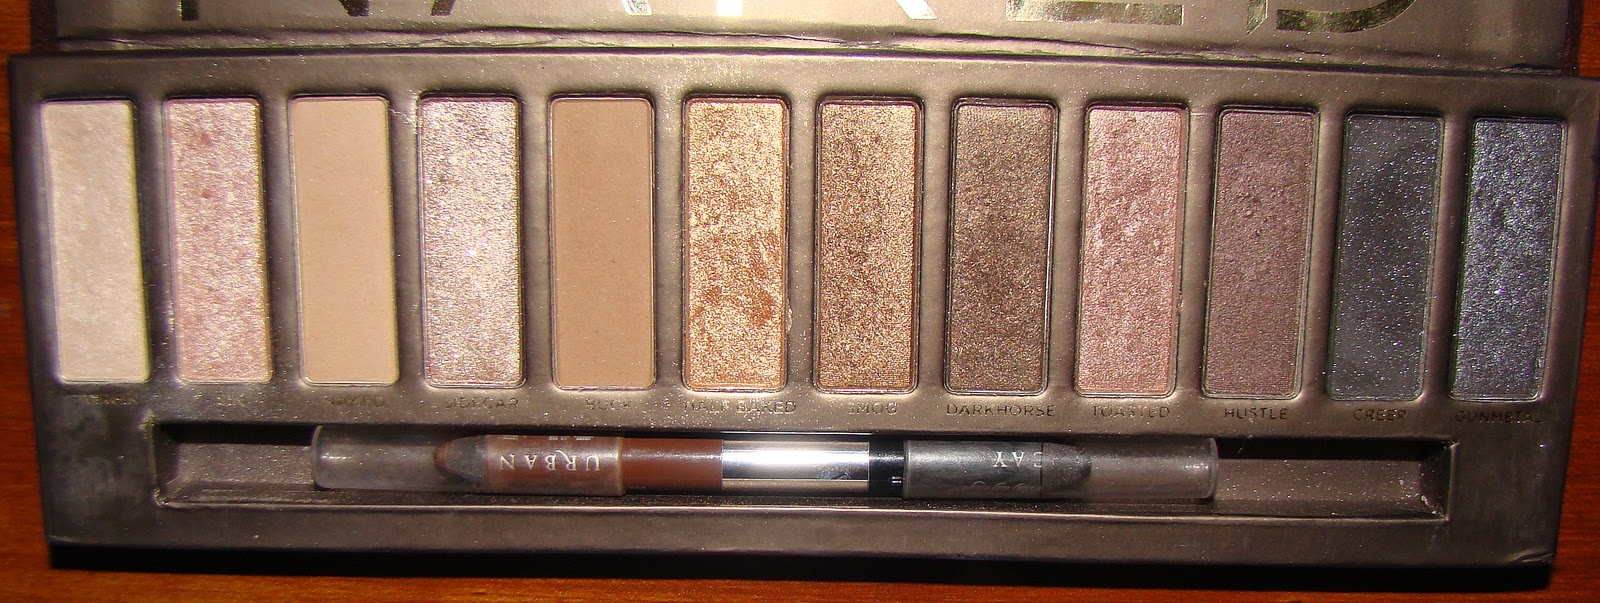 Urban Decay Naked Palette Review - Beauty In My Mind